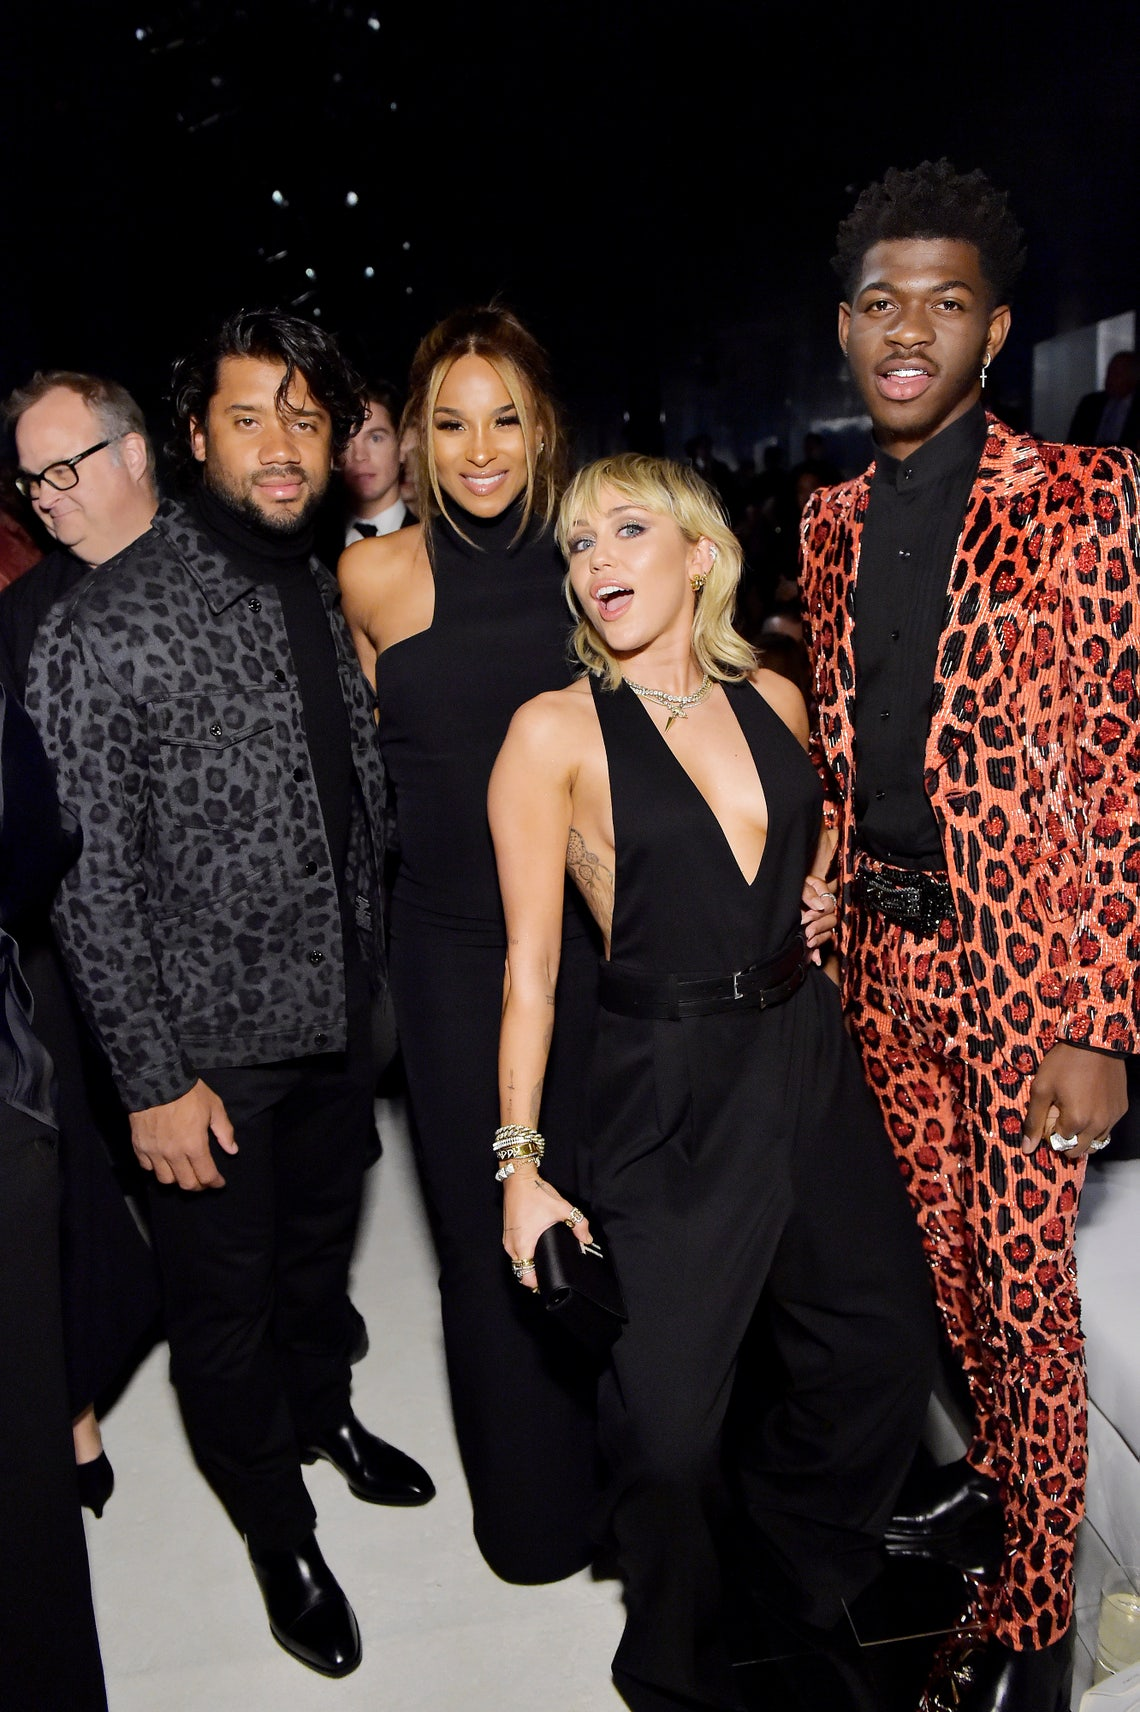 Kylie Jenner J Lo Miley Cyrus And More A Listers Hit Up Tom Ford S Aw20 Show